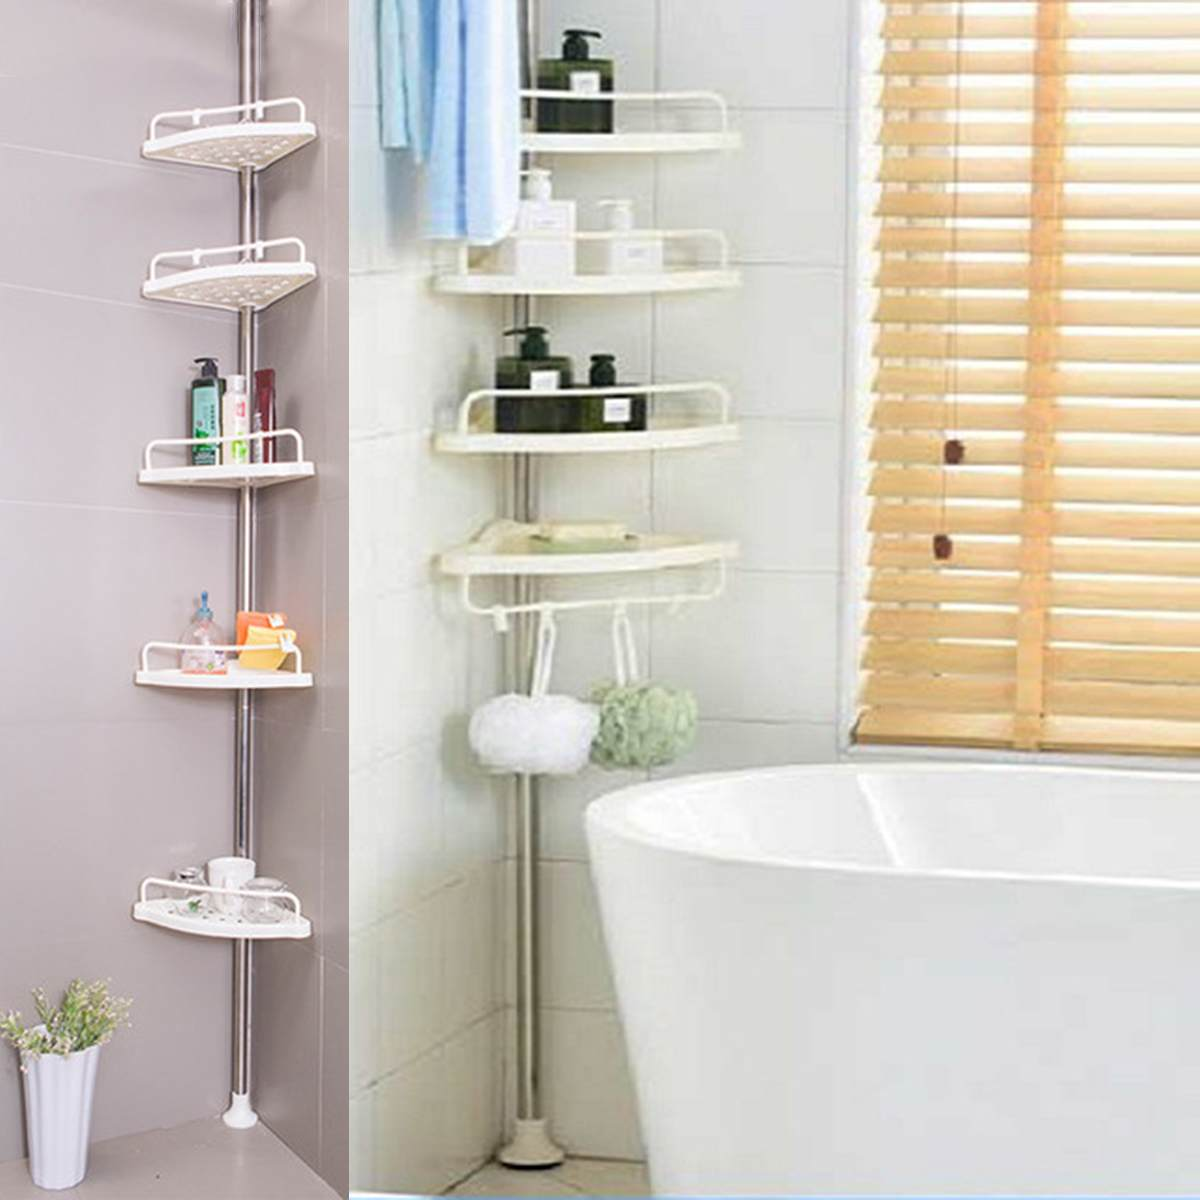 Tension Pole Shower Caddy Bathroom Corner Storage Caddy Kivaj